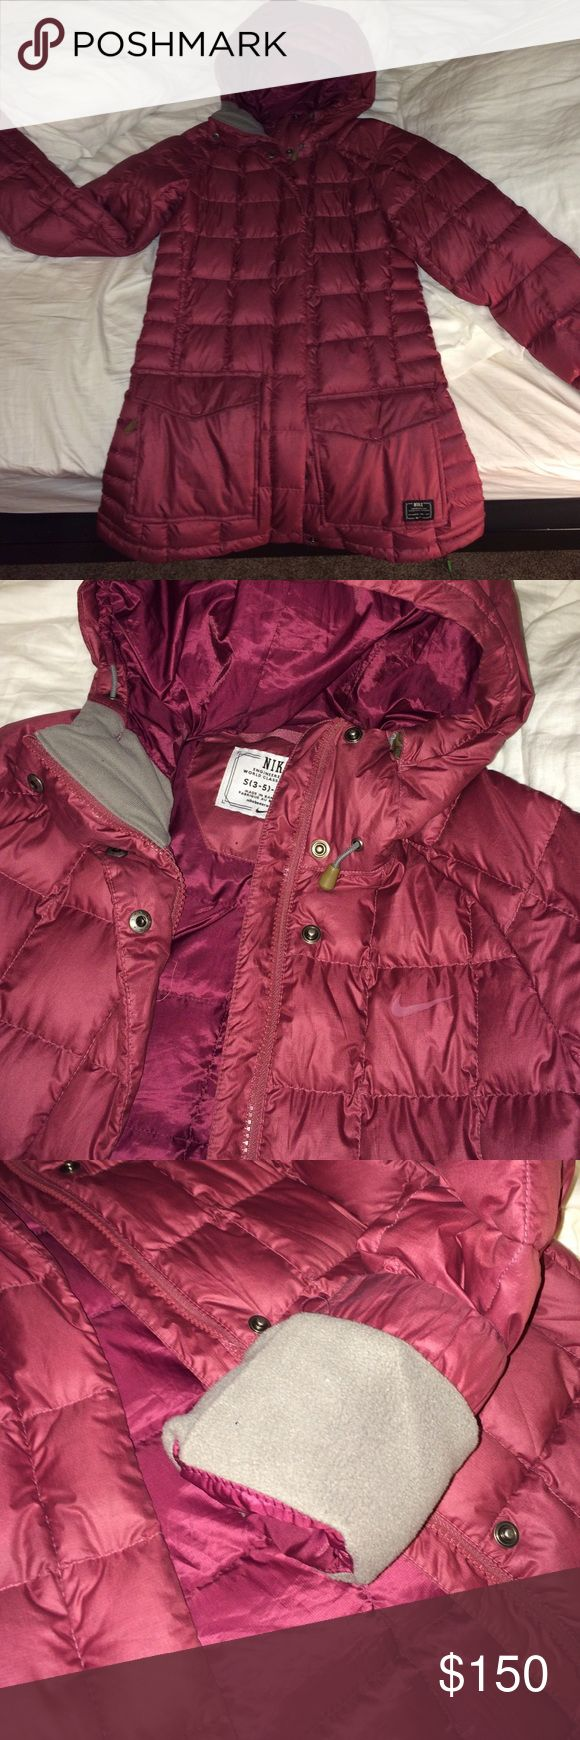 Nike long puffer TRADE or OFFER Super cute, in good condition. Looking to trade for a black nike coat or accepting offers. Nike Jackets & Coats Puffers